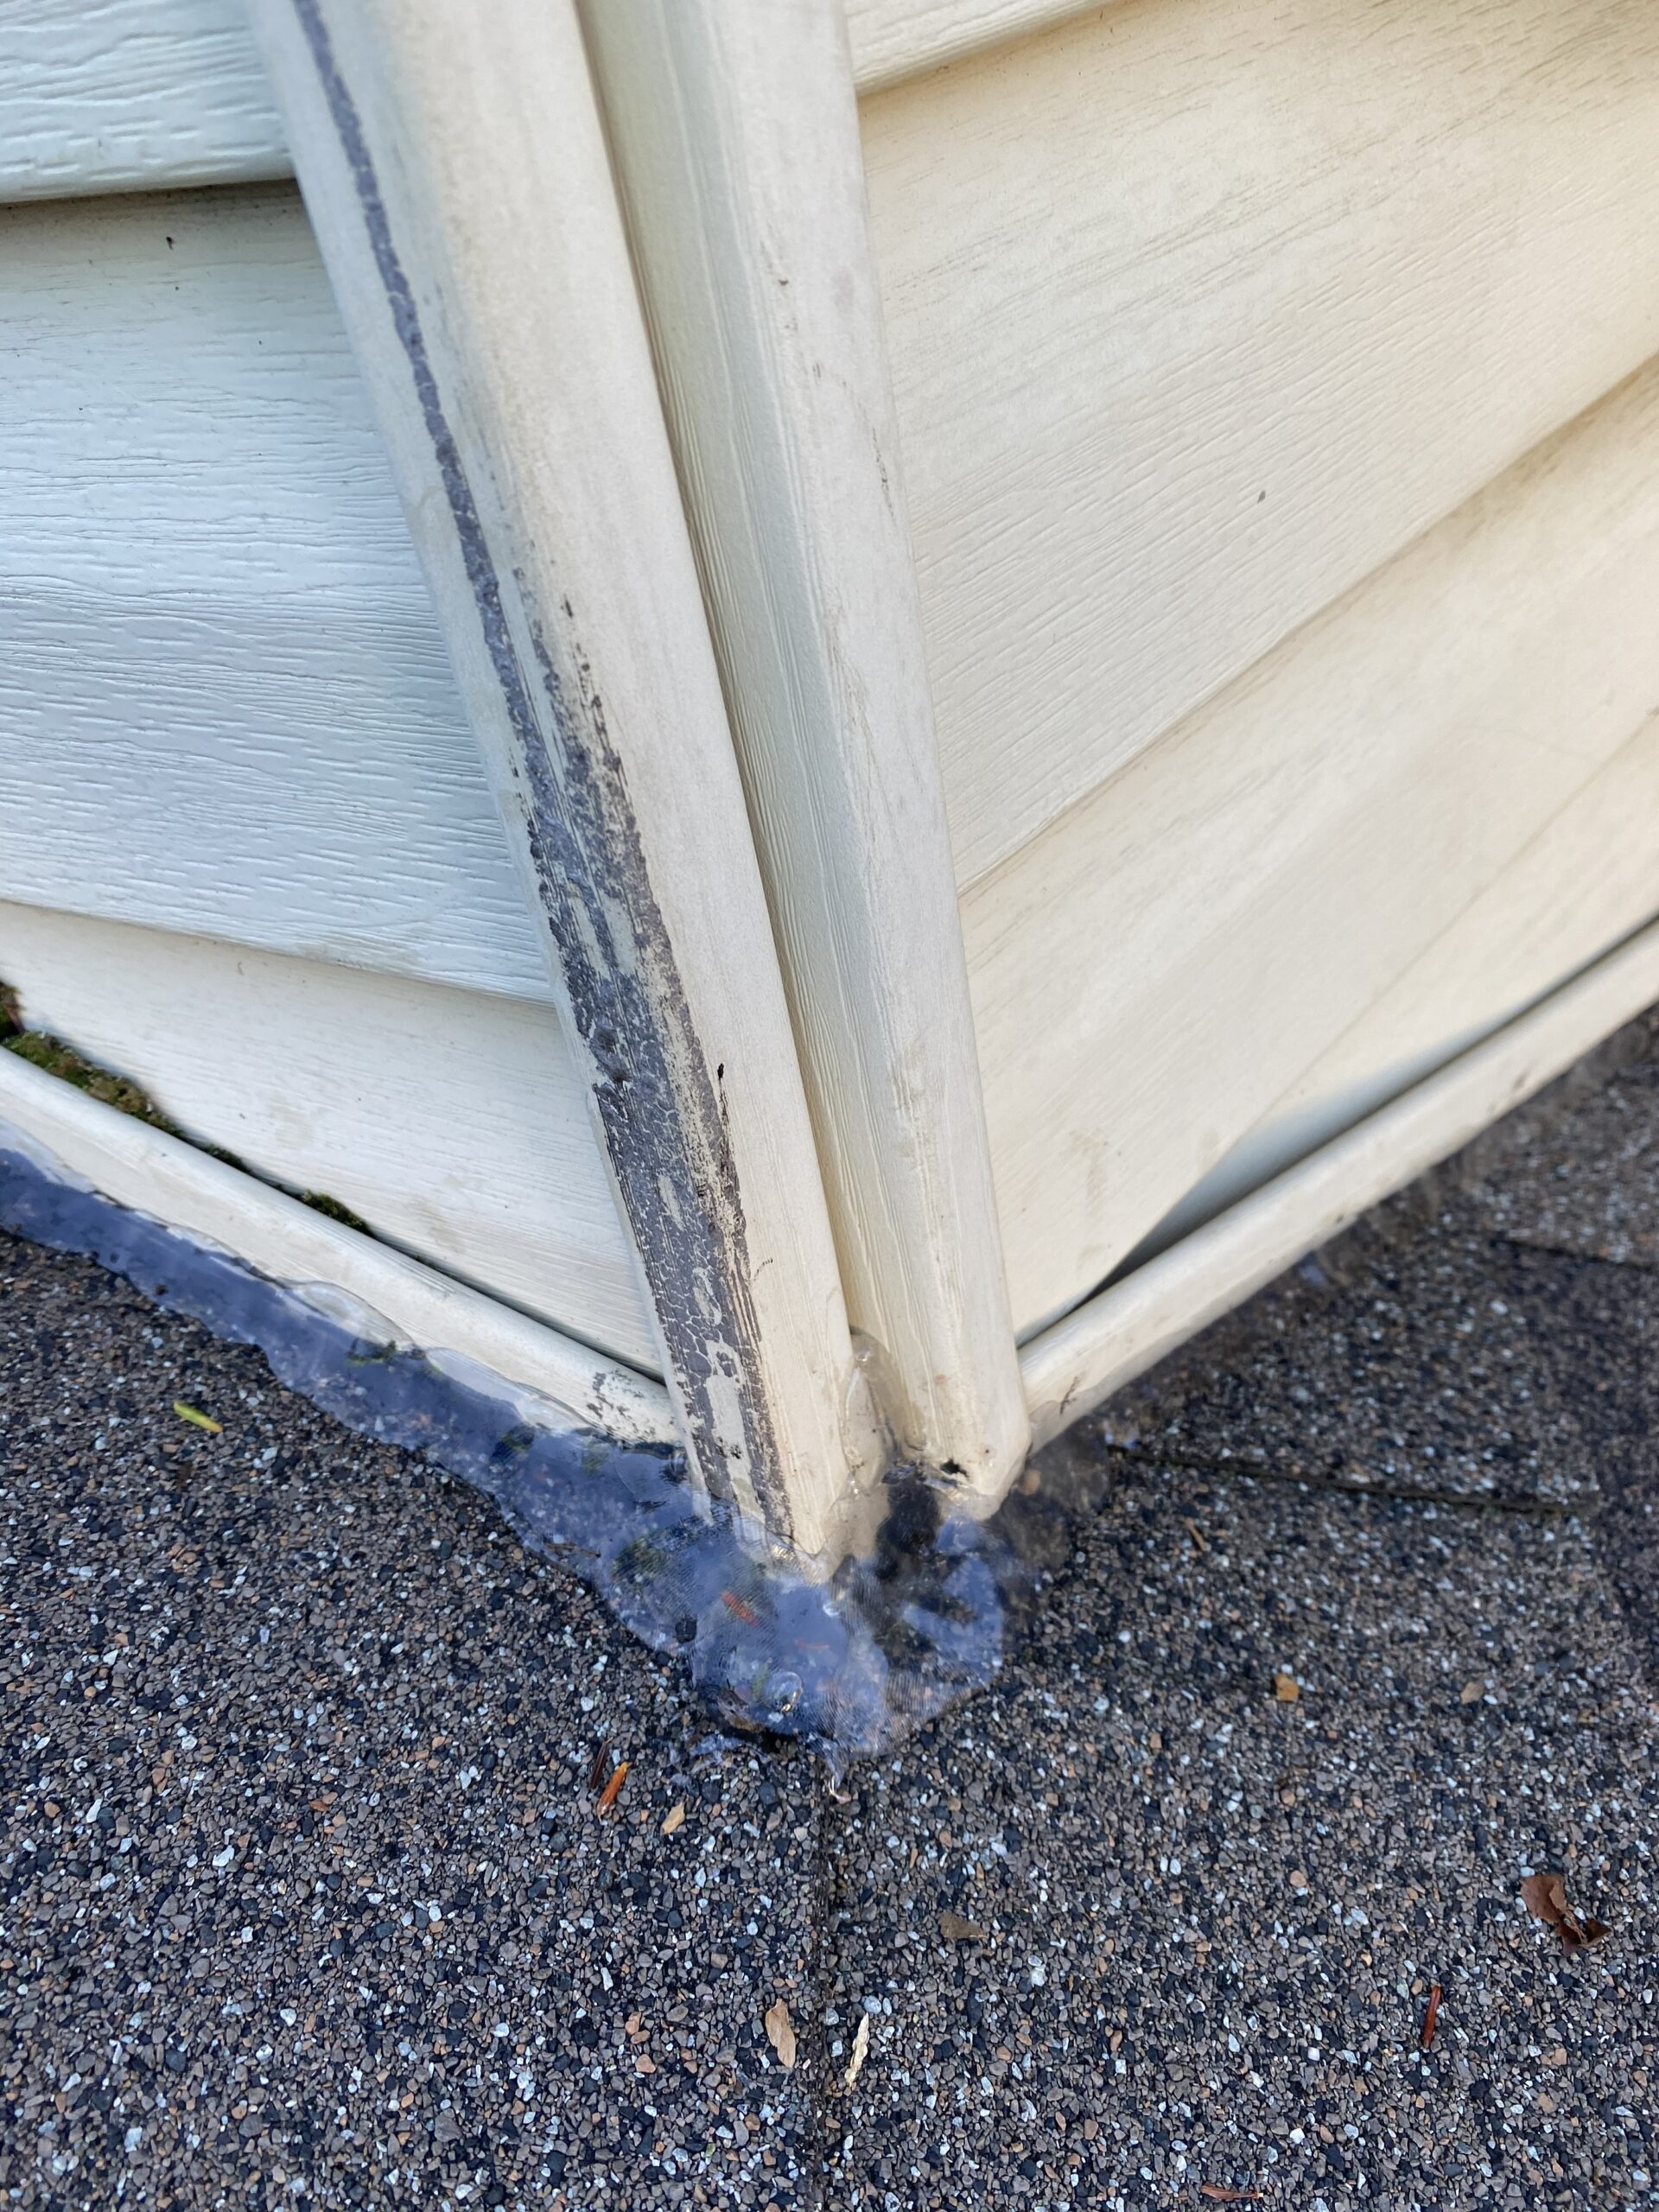 Resealed siding